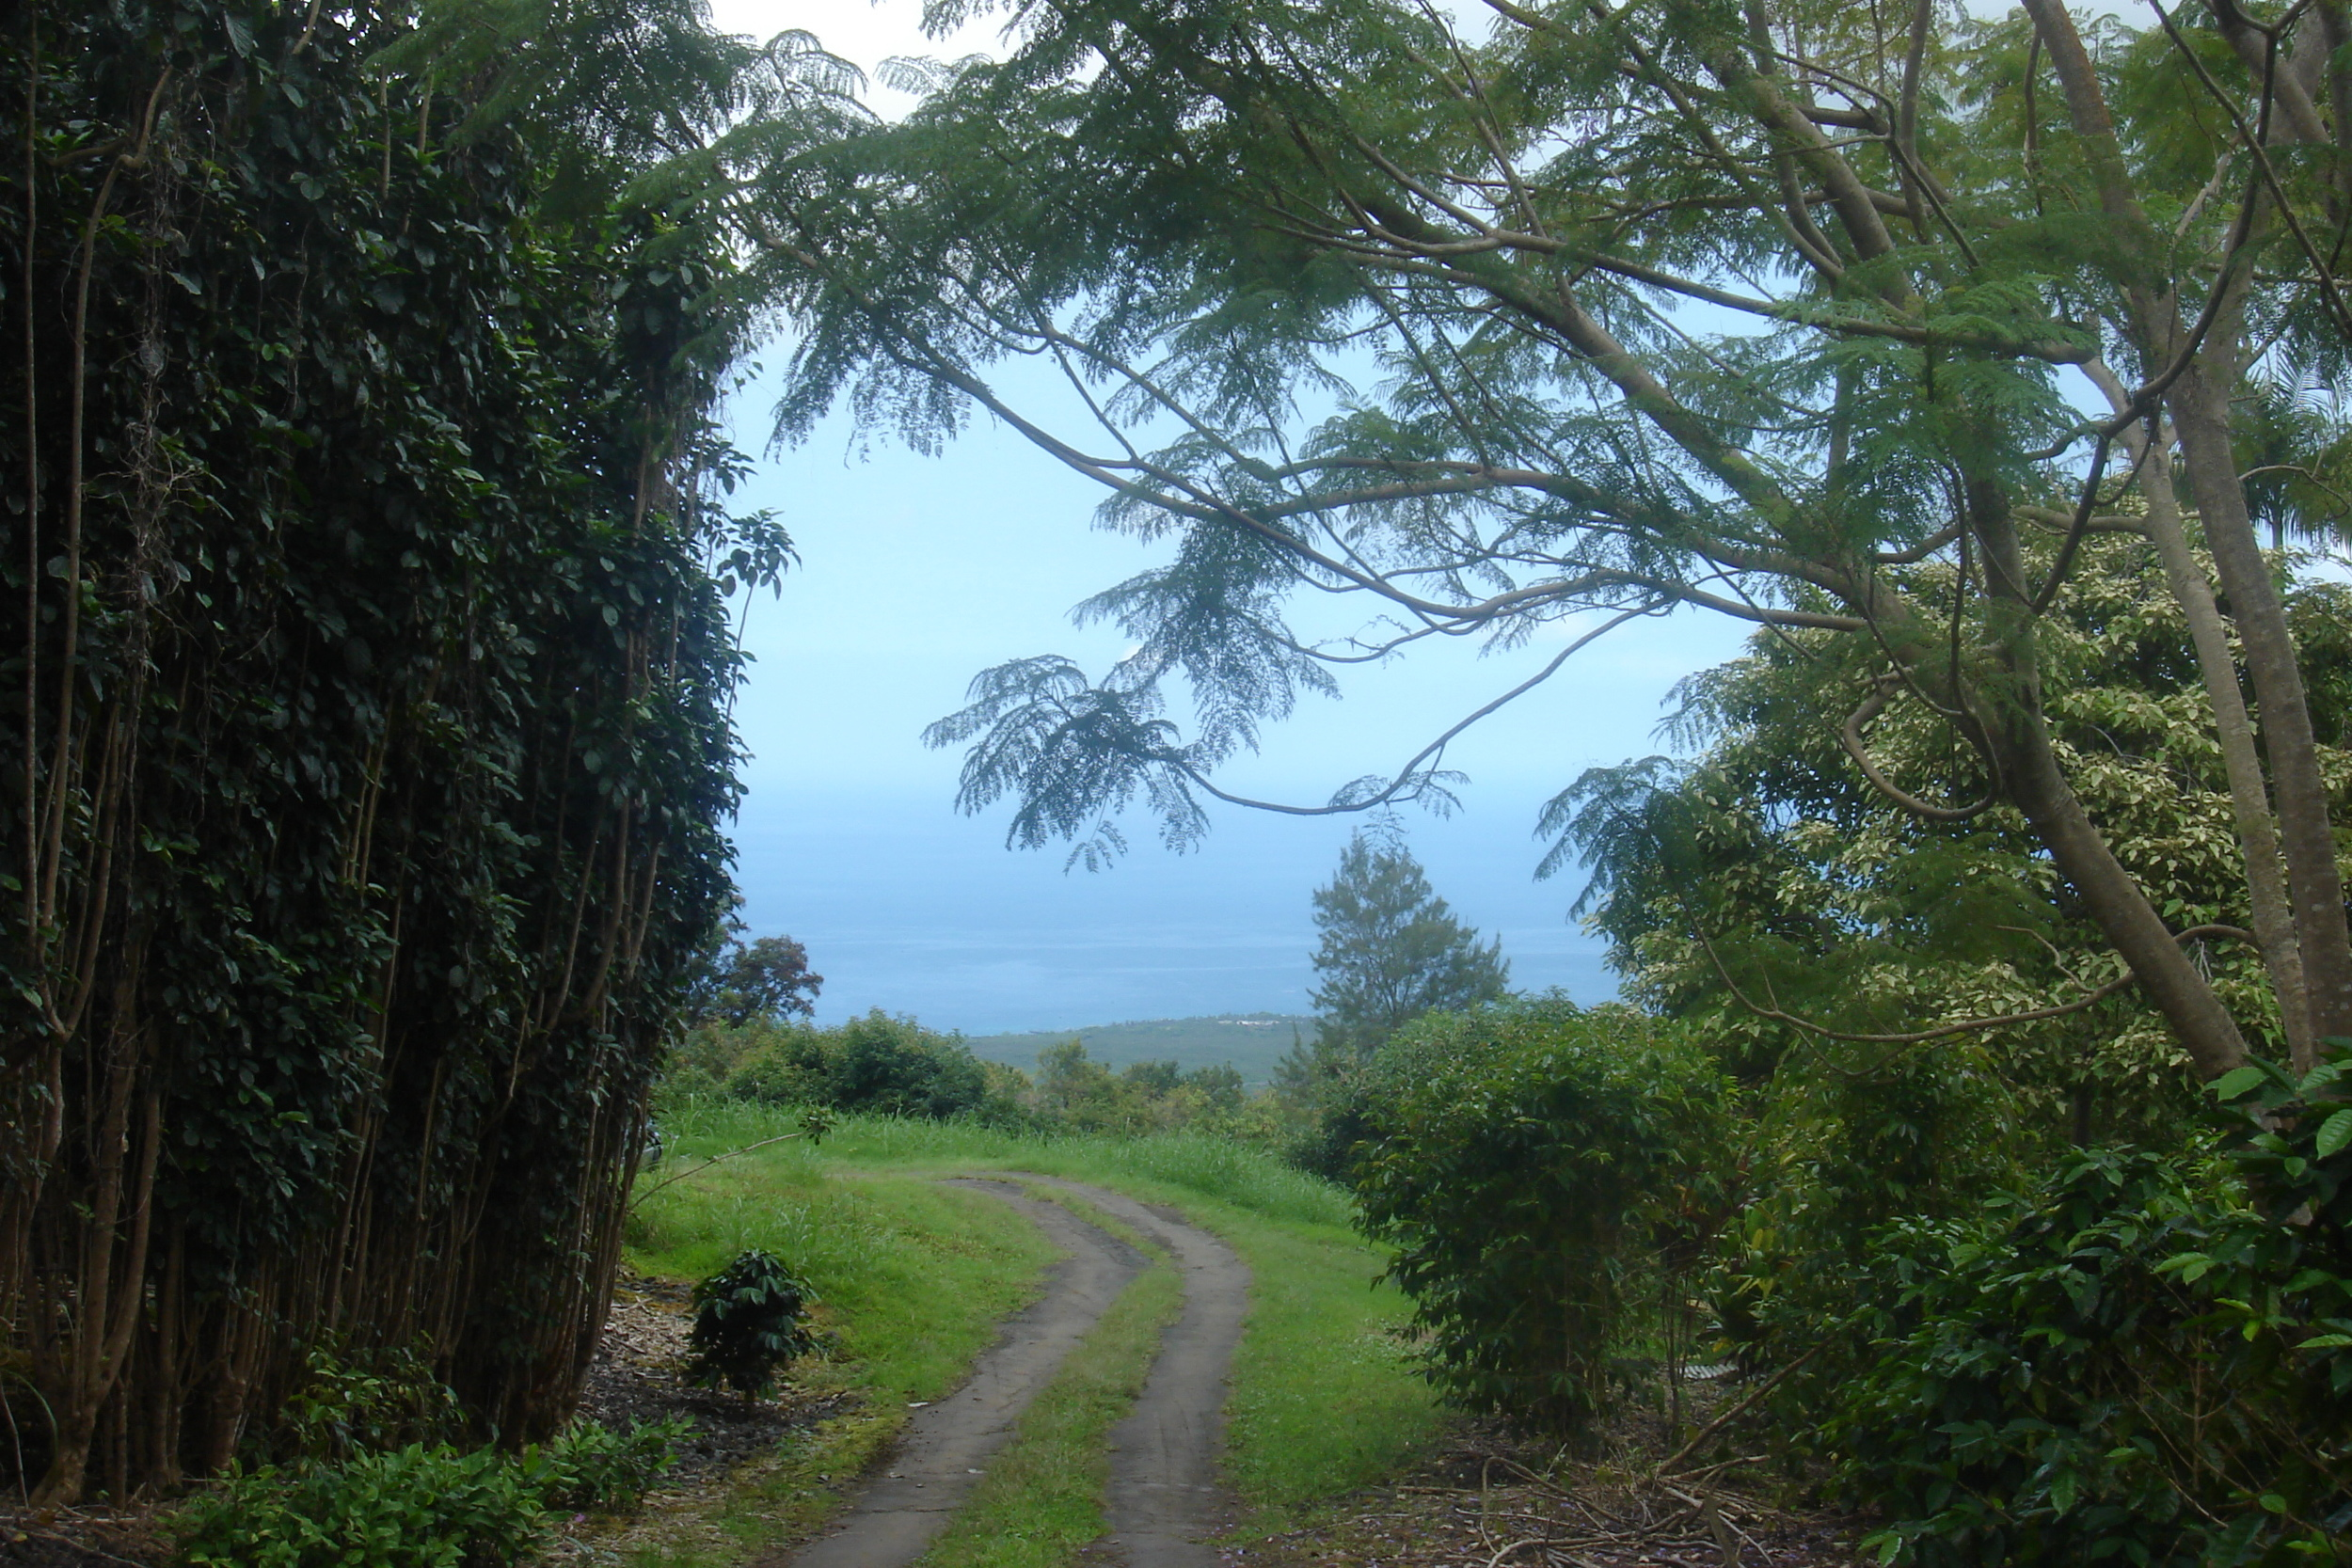 The climb up to our farm in Honaunau, Hawaii.  The beautiful Pacific Ocean glimpsed through the trees.